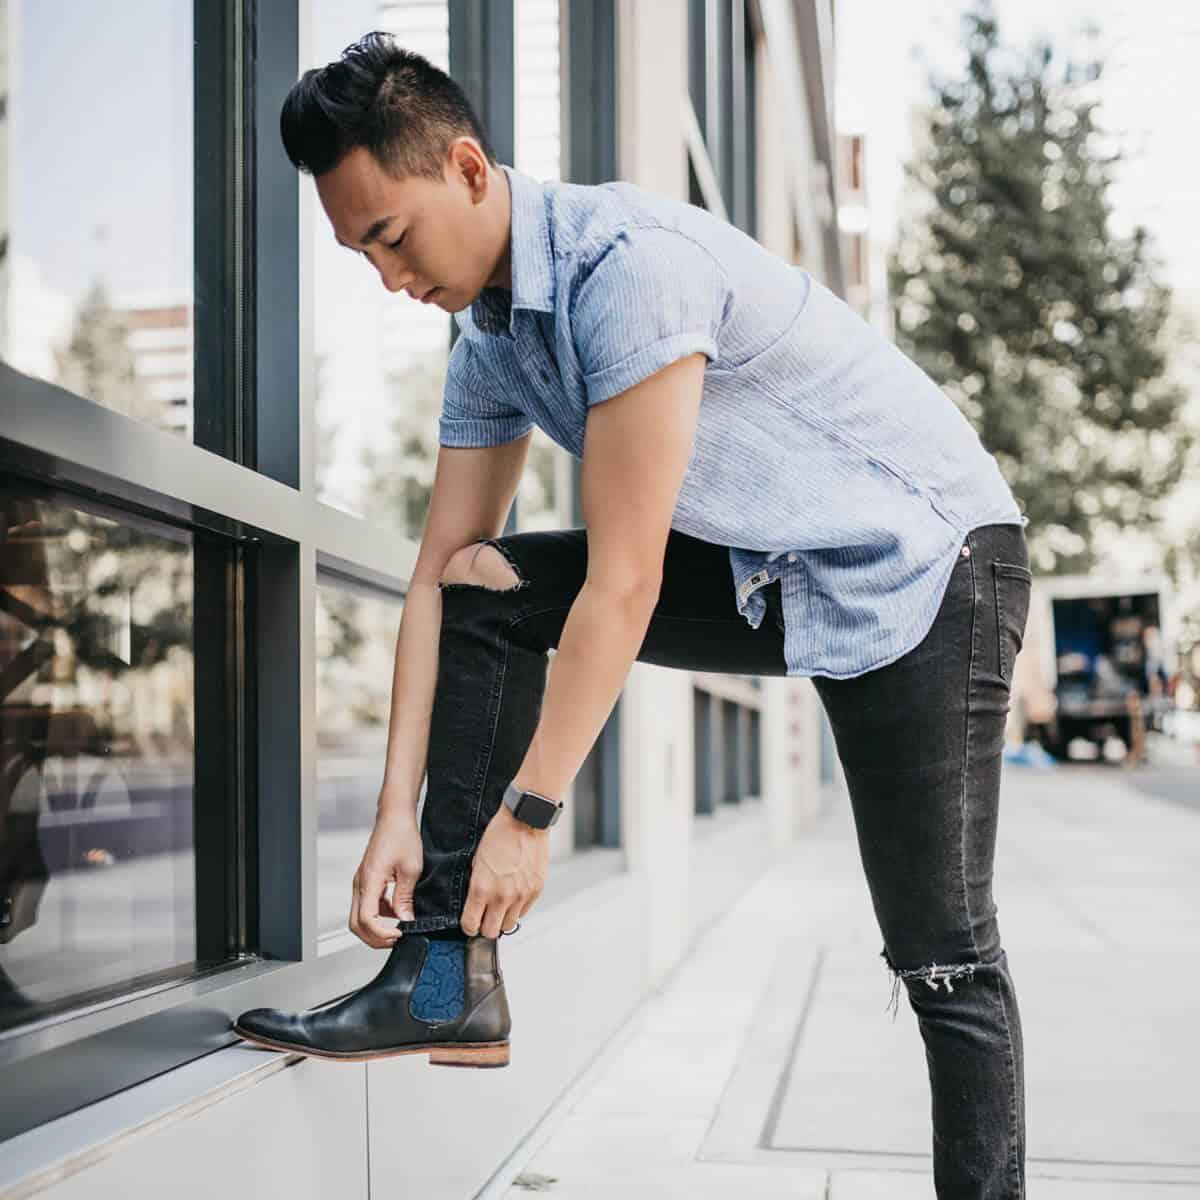 Man rolling his pants with his foot on a ledge.